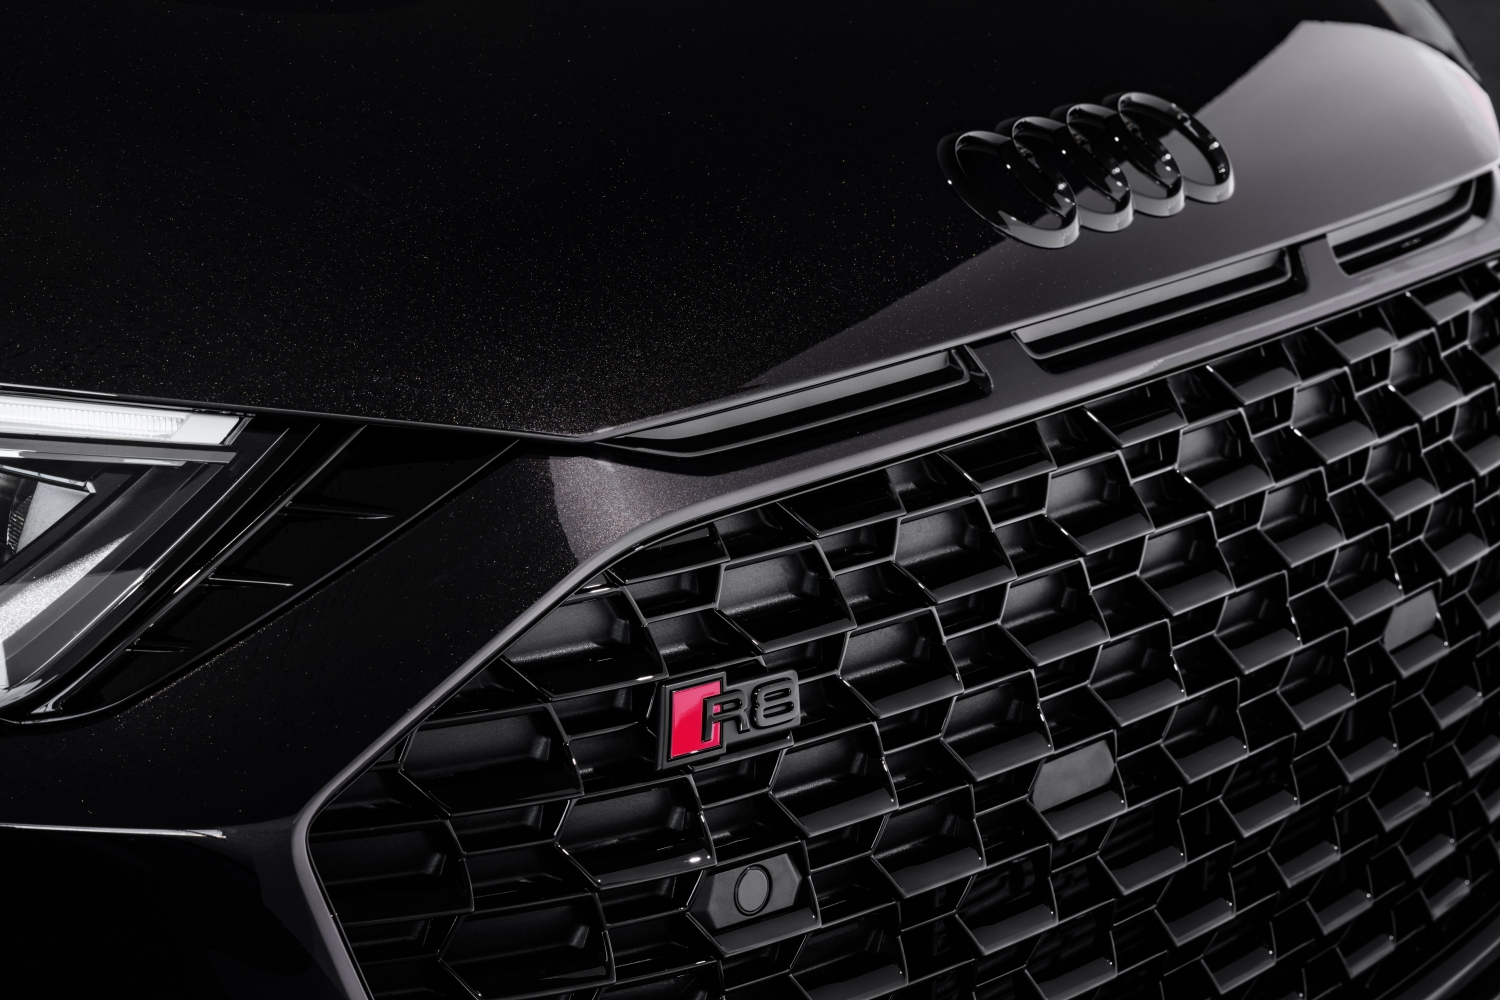 2021 Audi R8 Panther Edition grille